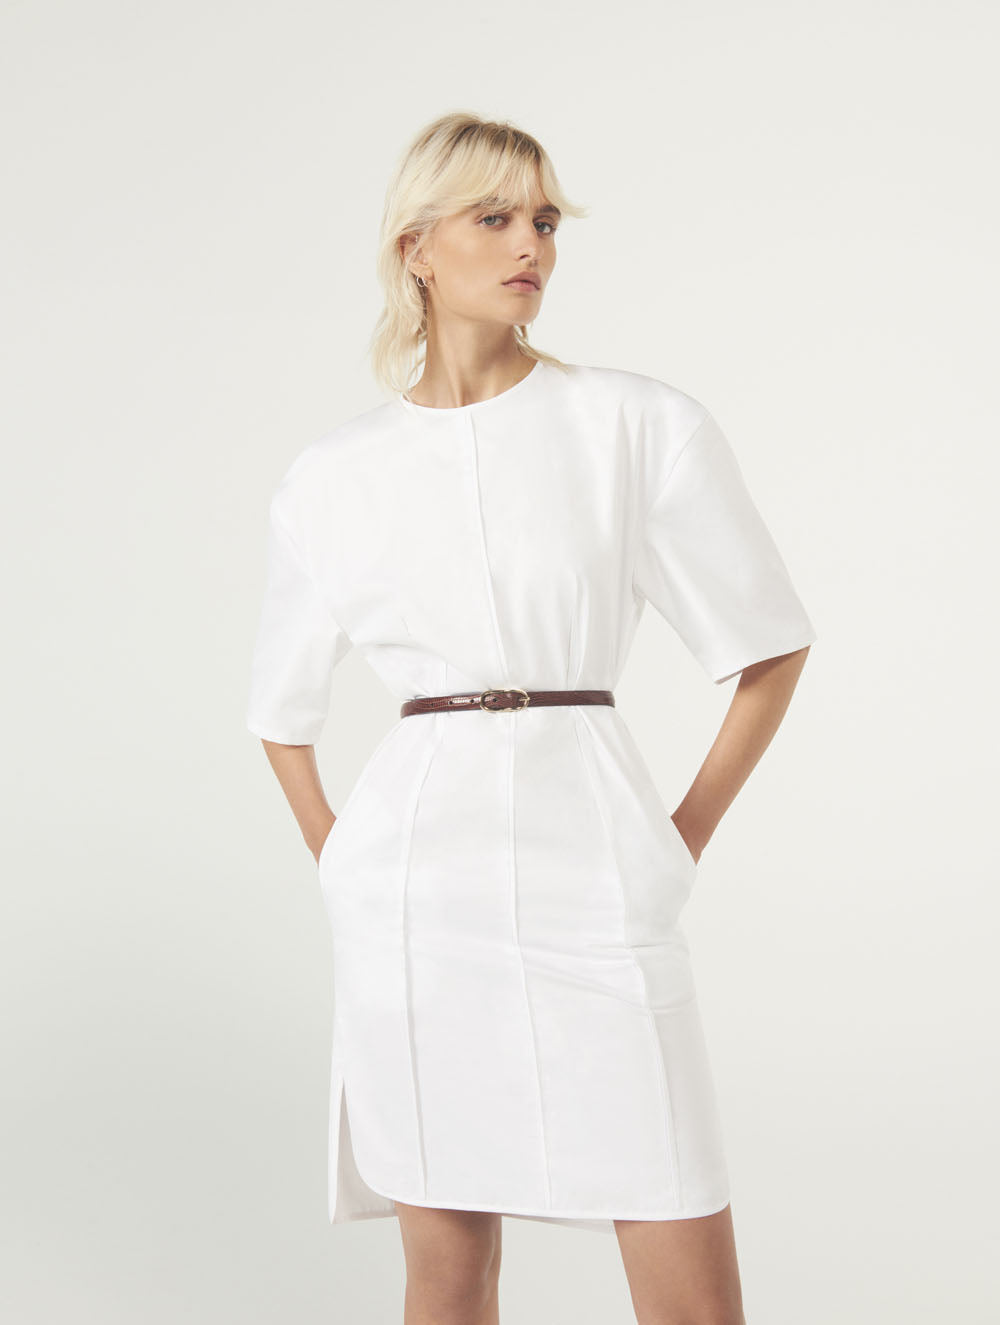 Women Fashion Lookbook Resort 2020 Collection Aknvas Look 2